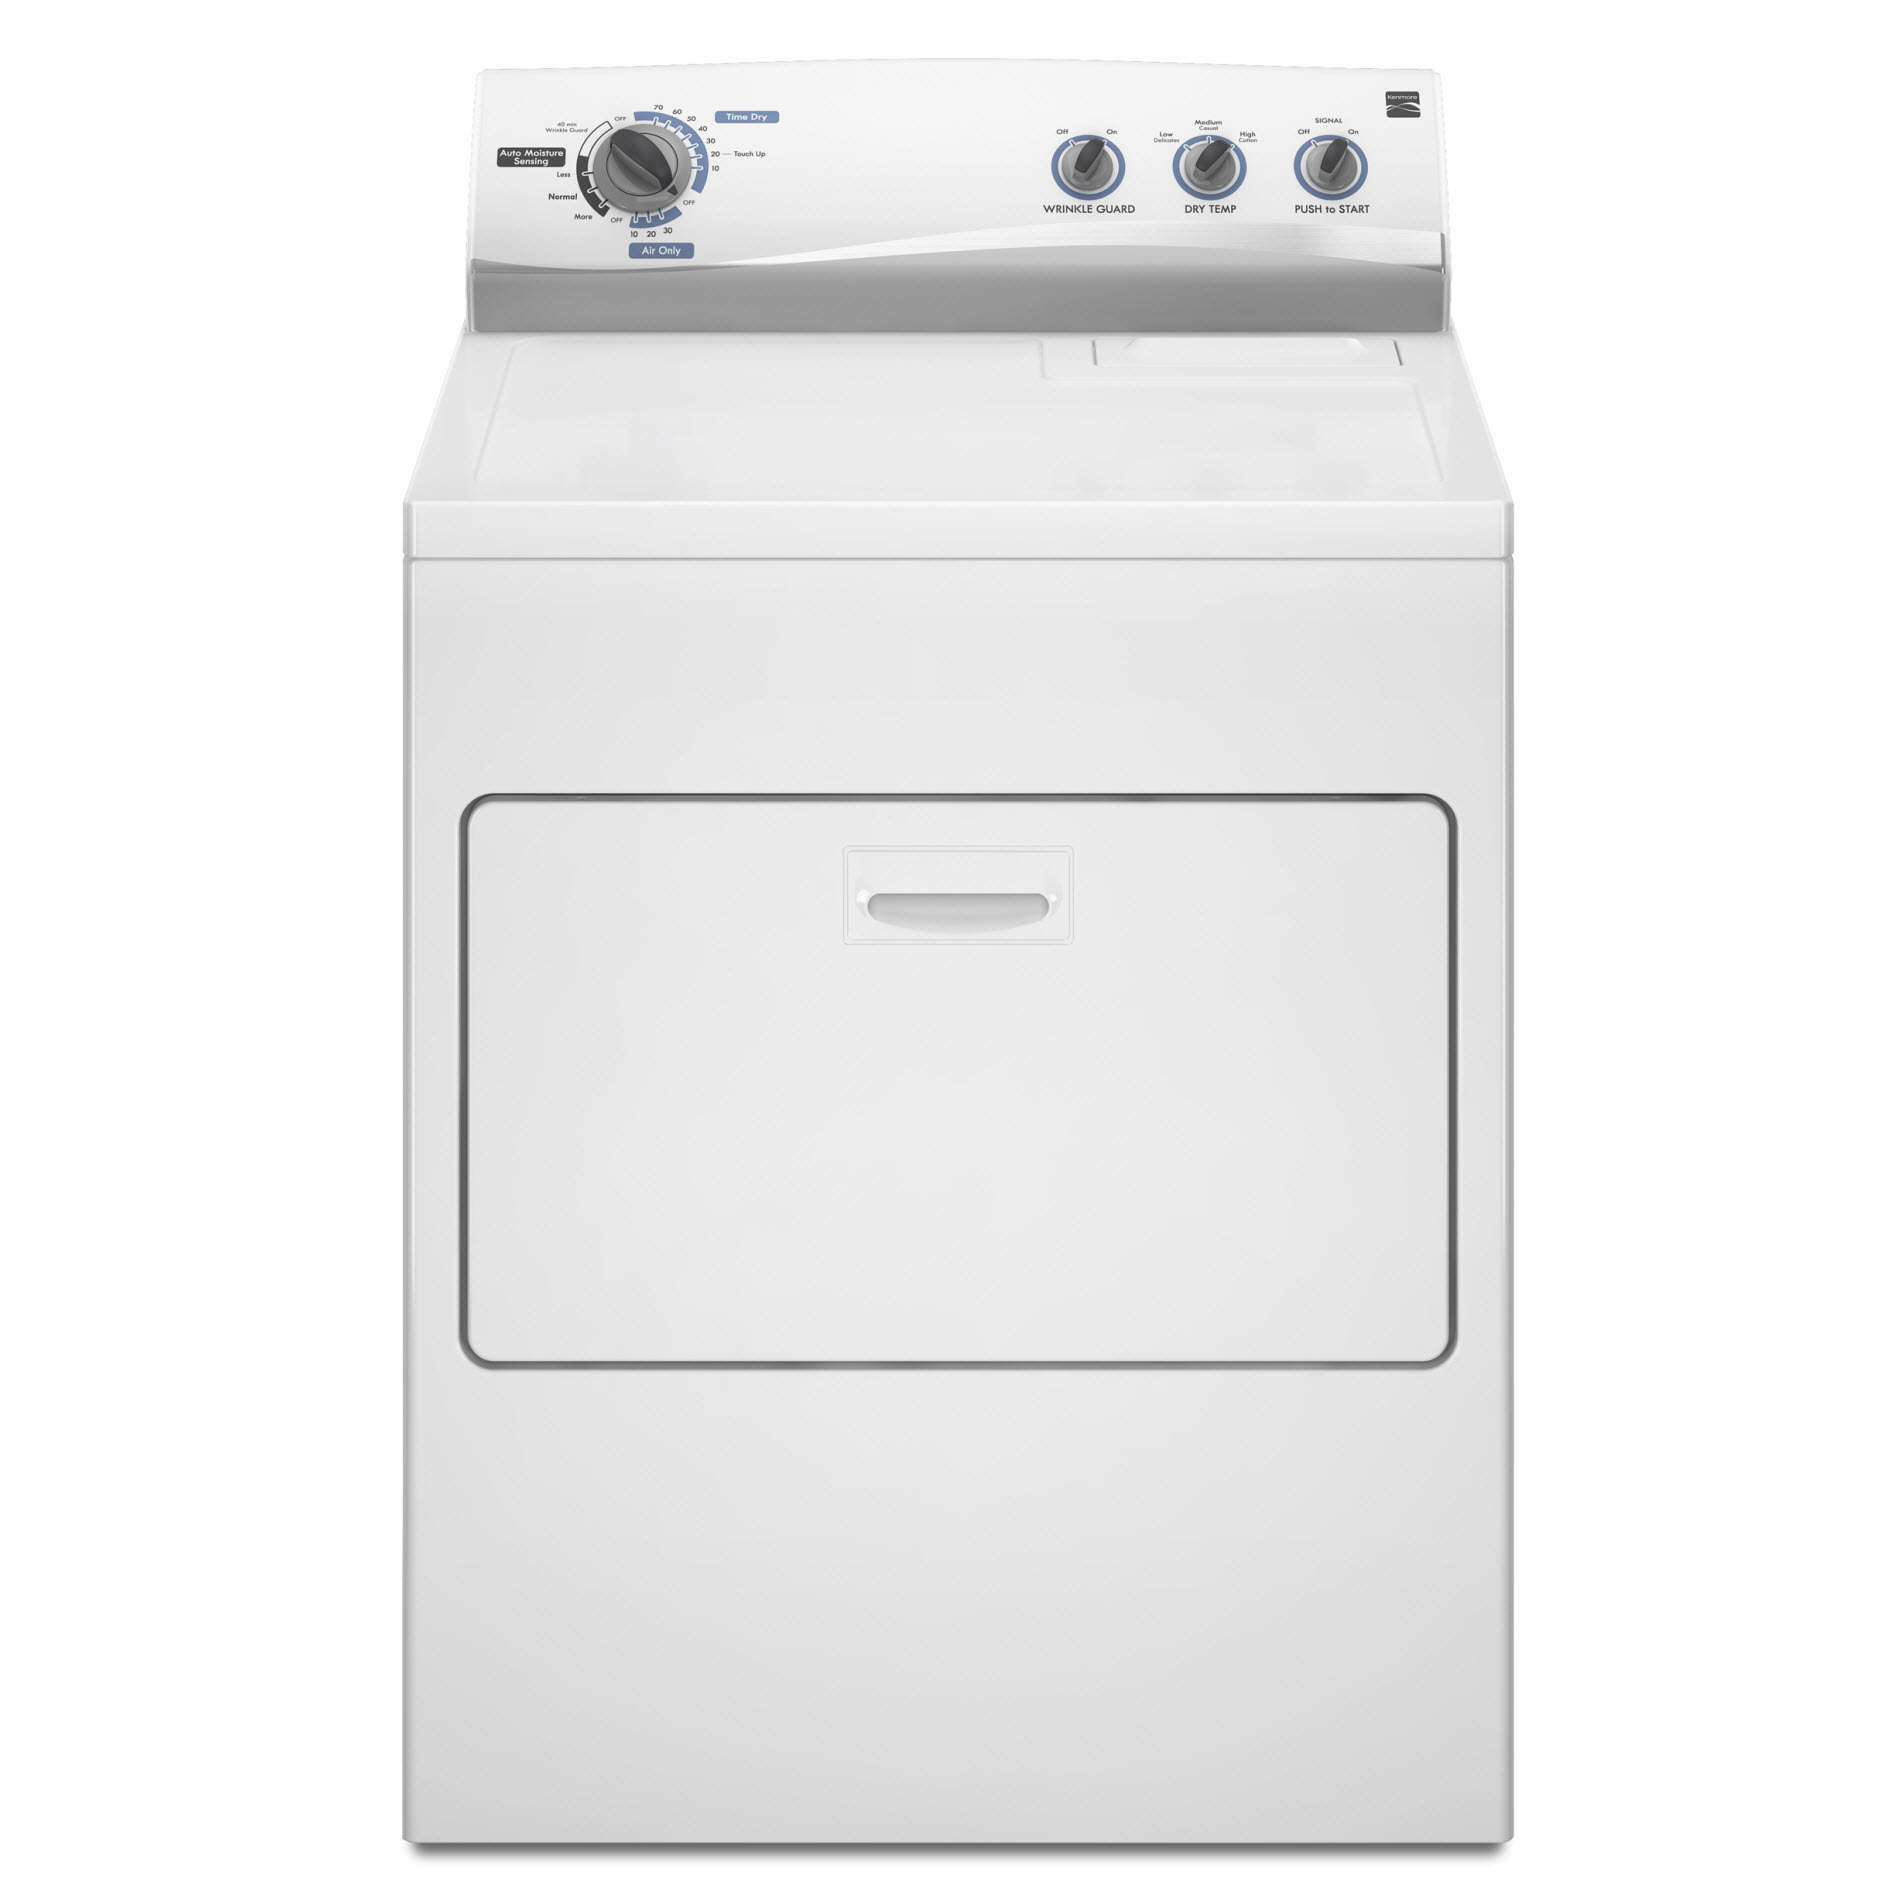 kenmore washer fuse location kenmore washer noise wiring whirlpool dryer belt diagram whirlpool dryer electrical schematic [ 1900 x 1900 Pixel ]